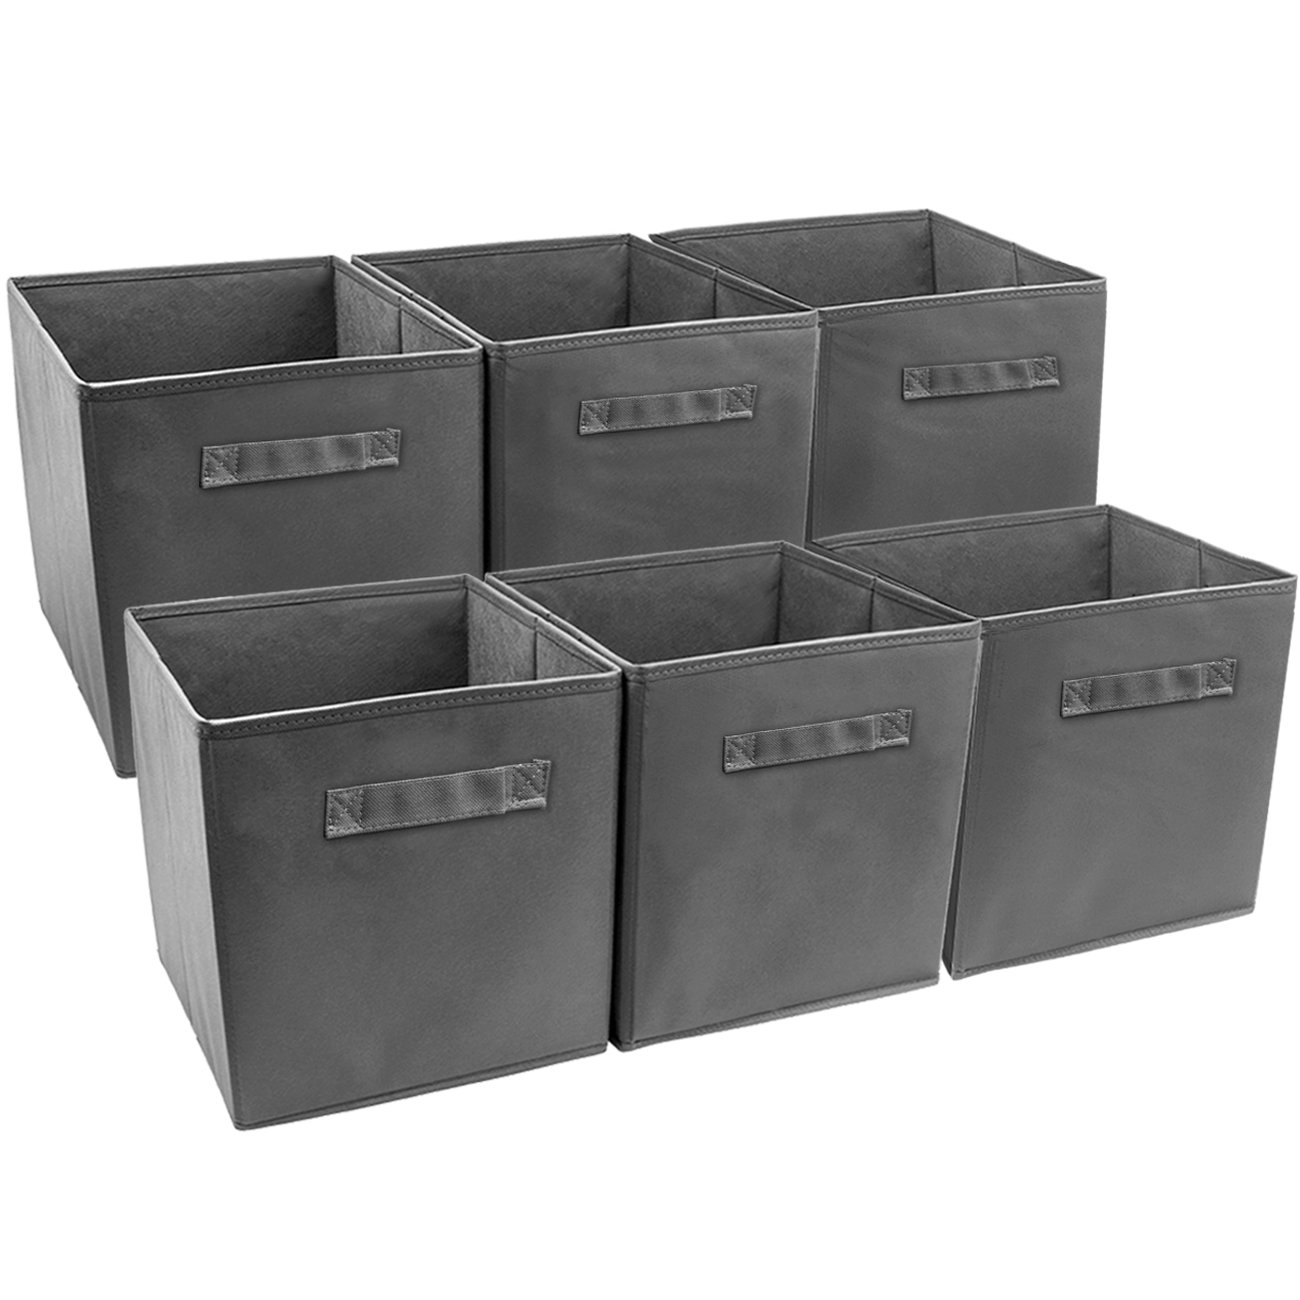 Charmant Amazon.com: Sorbus Collapsible Storage Bin, Grey (Pack Of 6): Home U0026 Kitchen